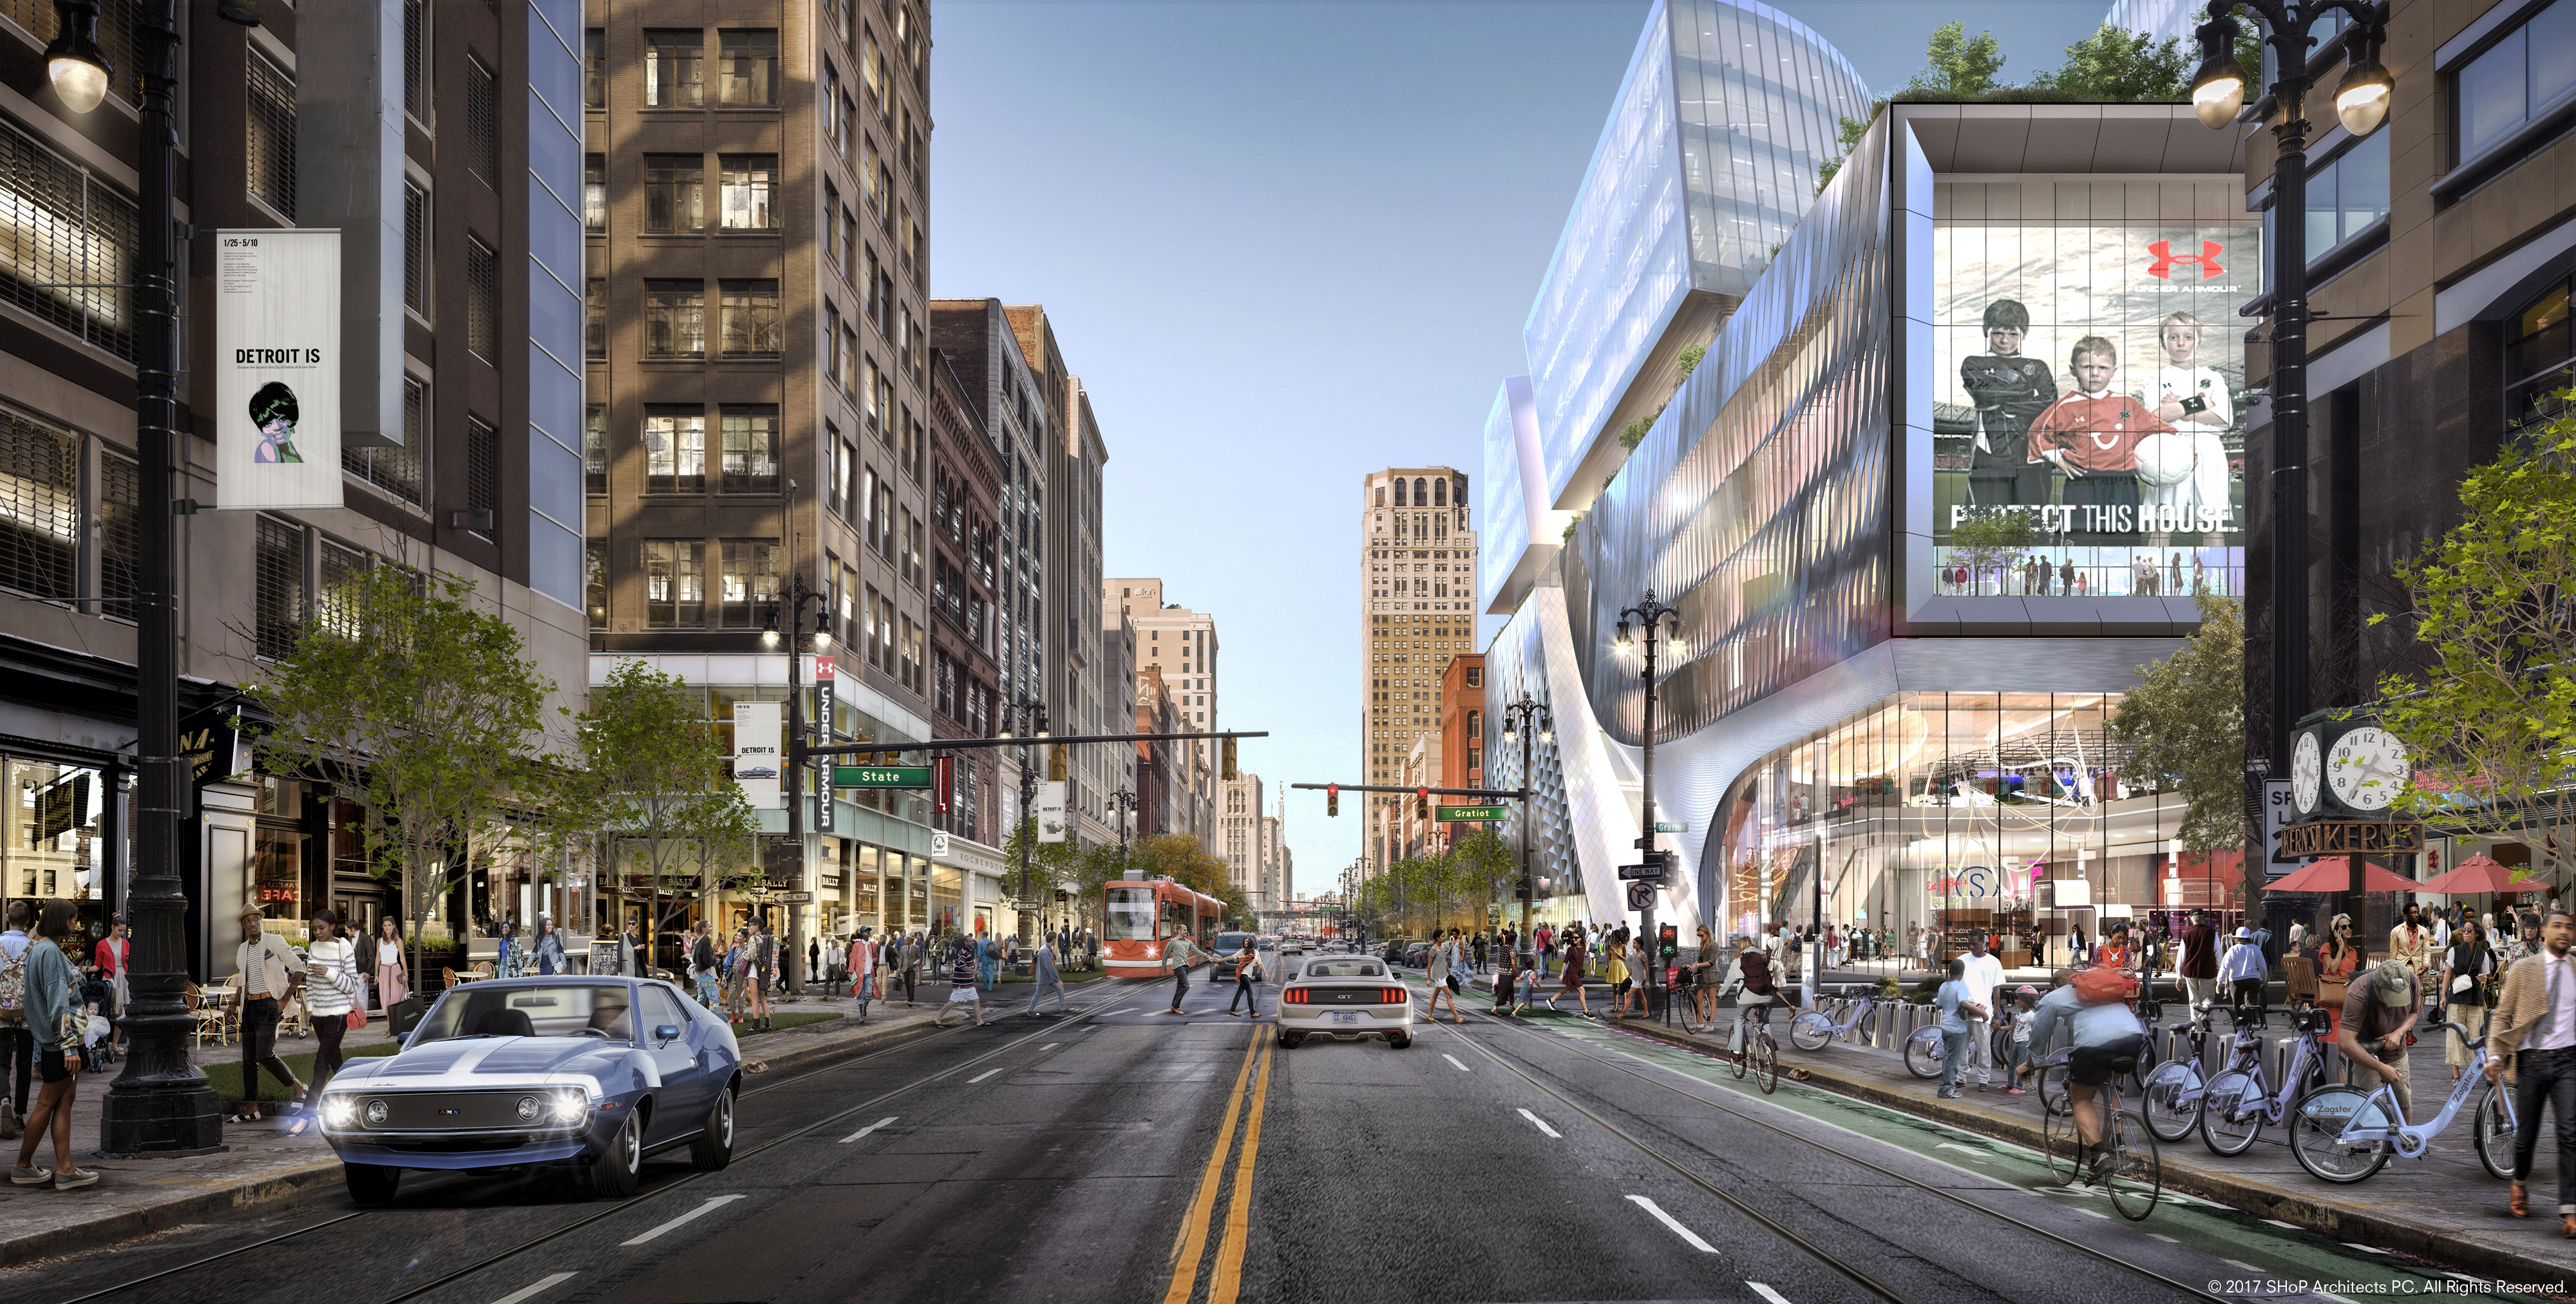 Hudson's site updates: Groundbreaking on schedule, high rents planned